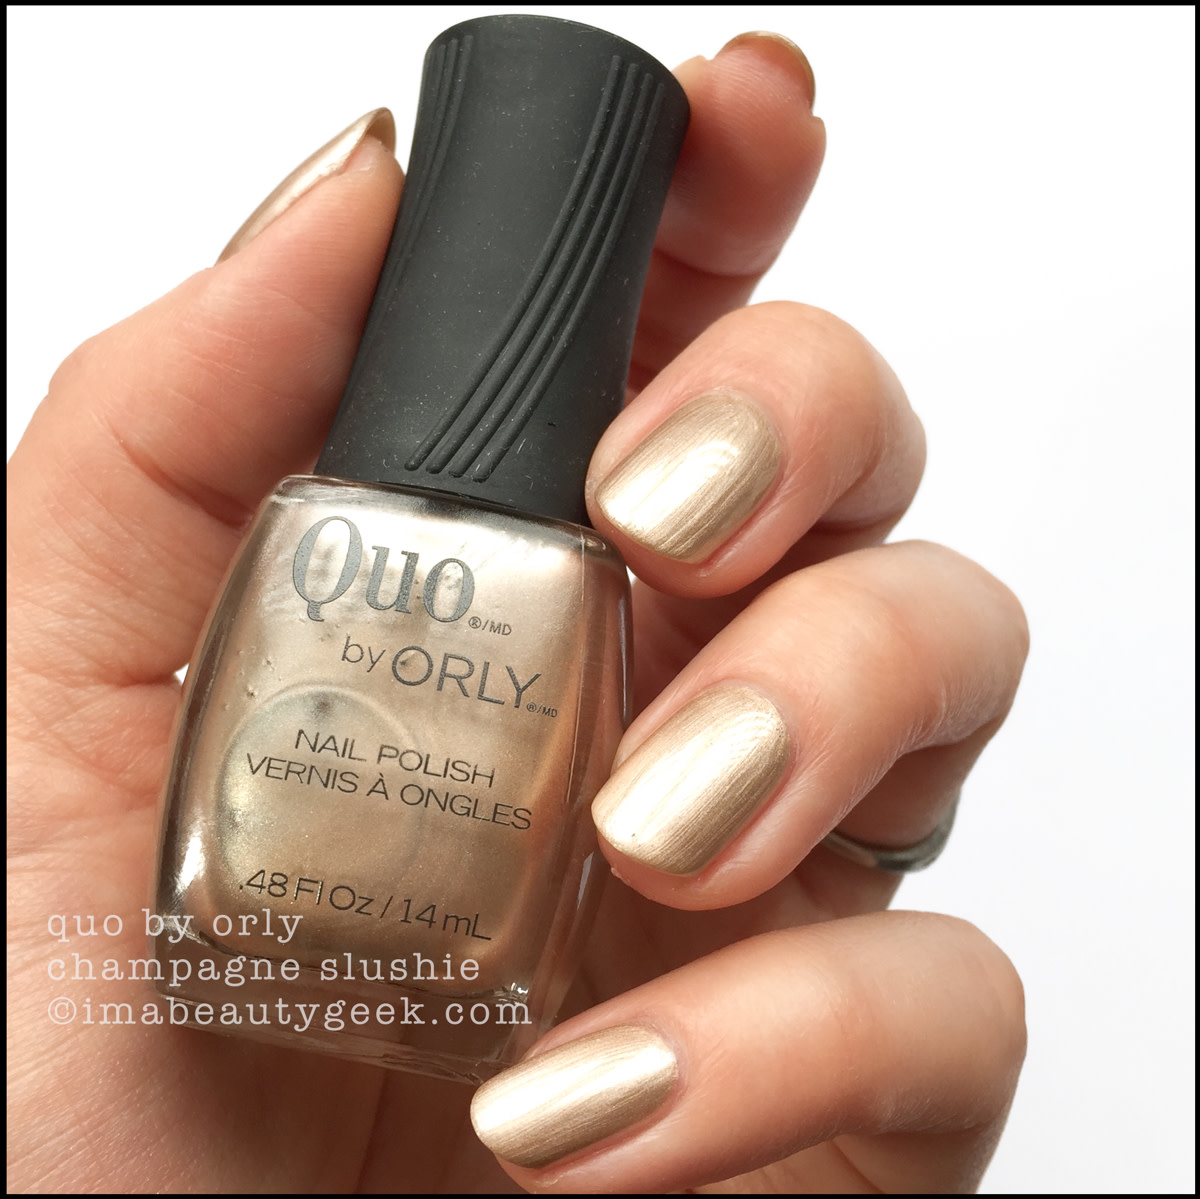 Quo by Orly Champagne Slushie - Orly Darlings of Defiance Collection Swatches